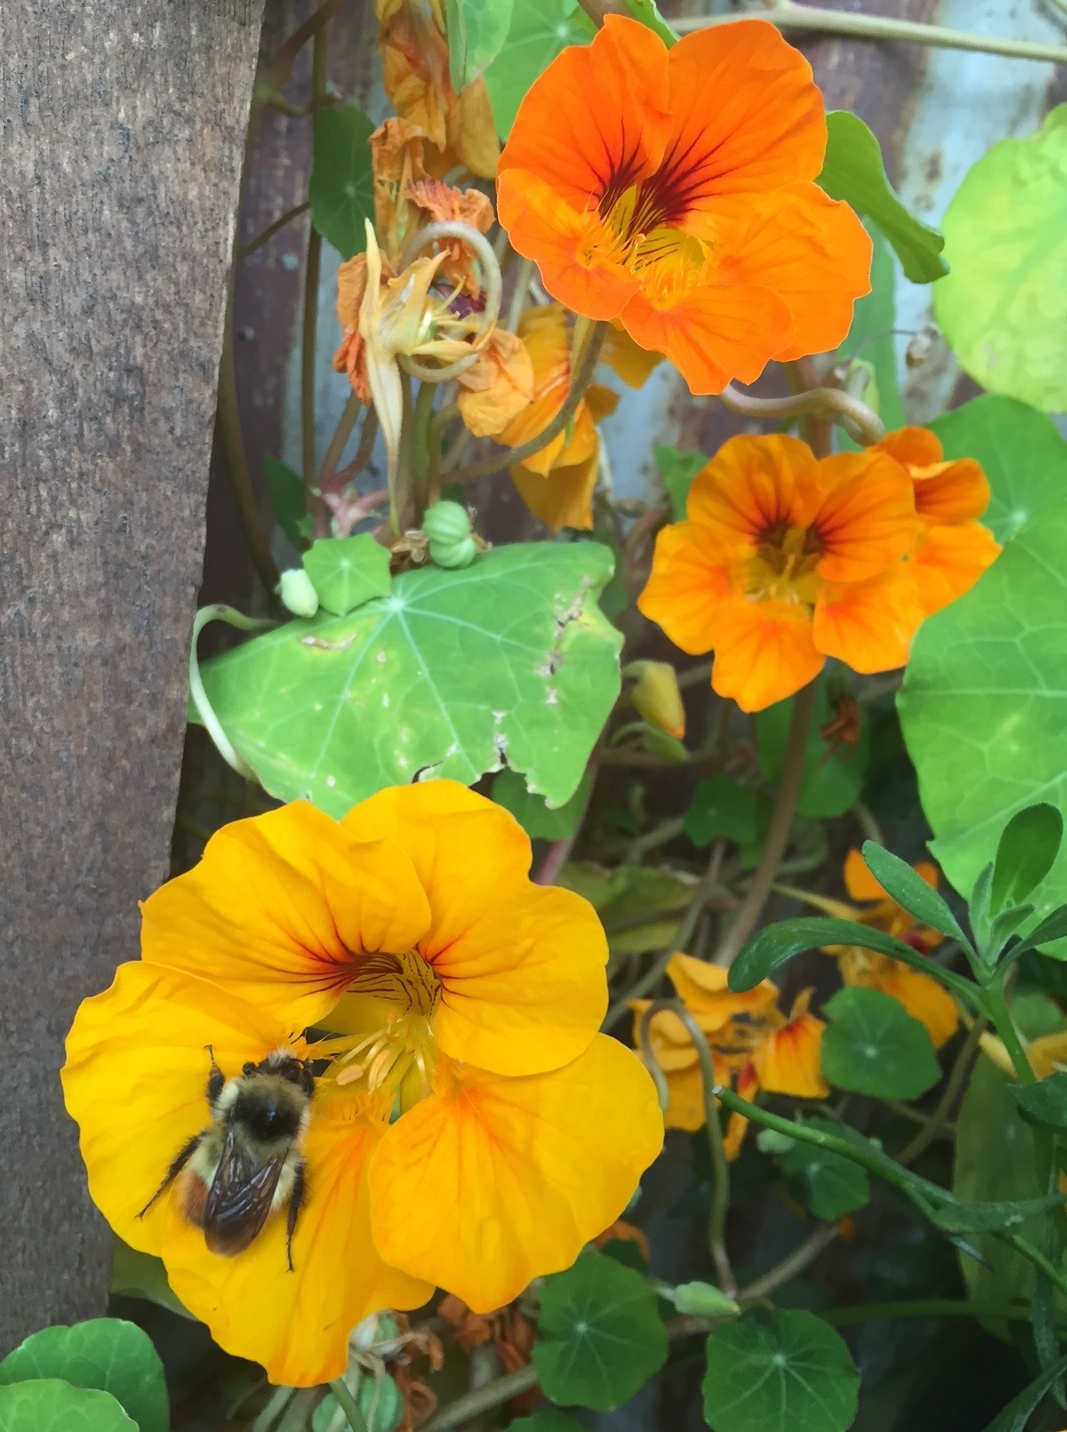 We love growing nasturtiums from seed & being surprised by their color palette.